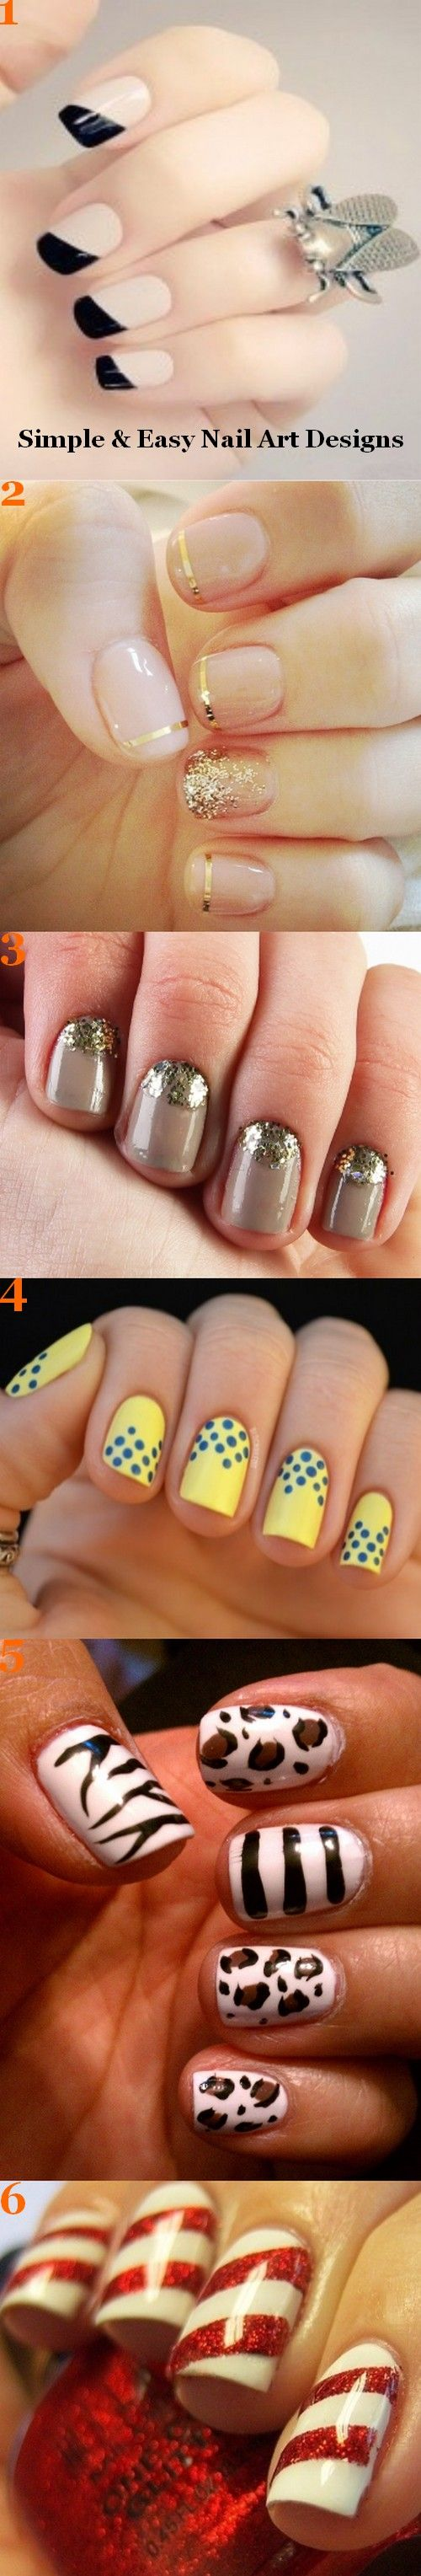 Simple and easy nail art designs.